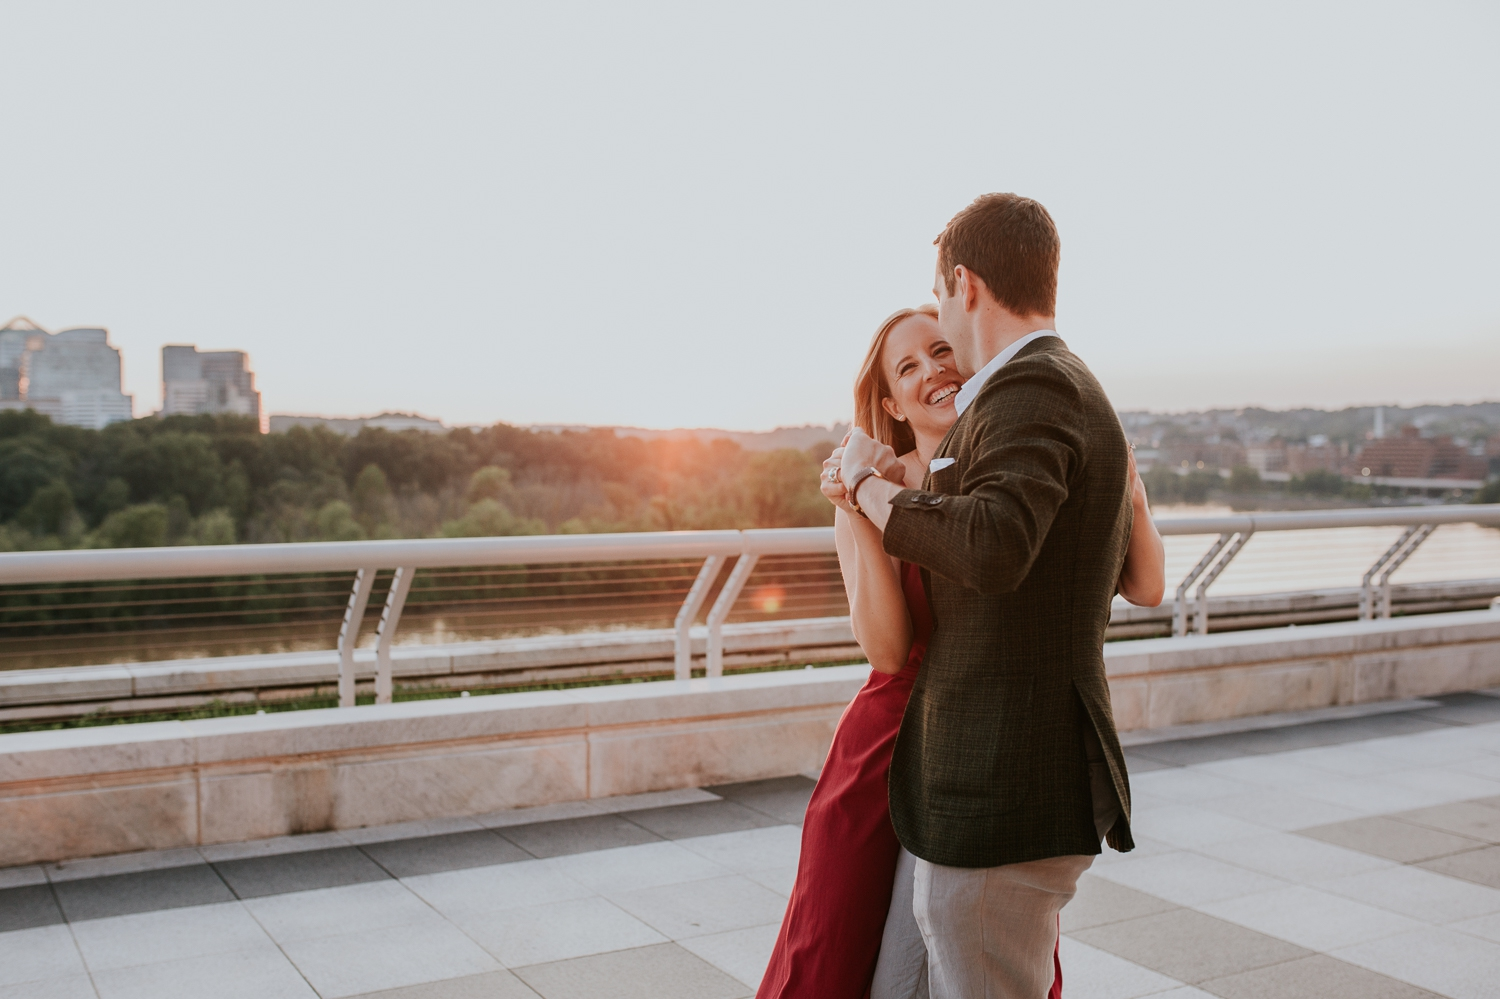 washington-dc-kennedy-center-rooftop-sunset-engagement-photography 4.jpg